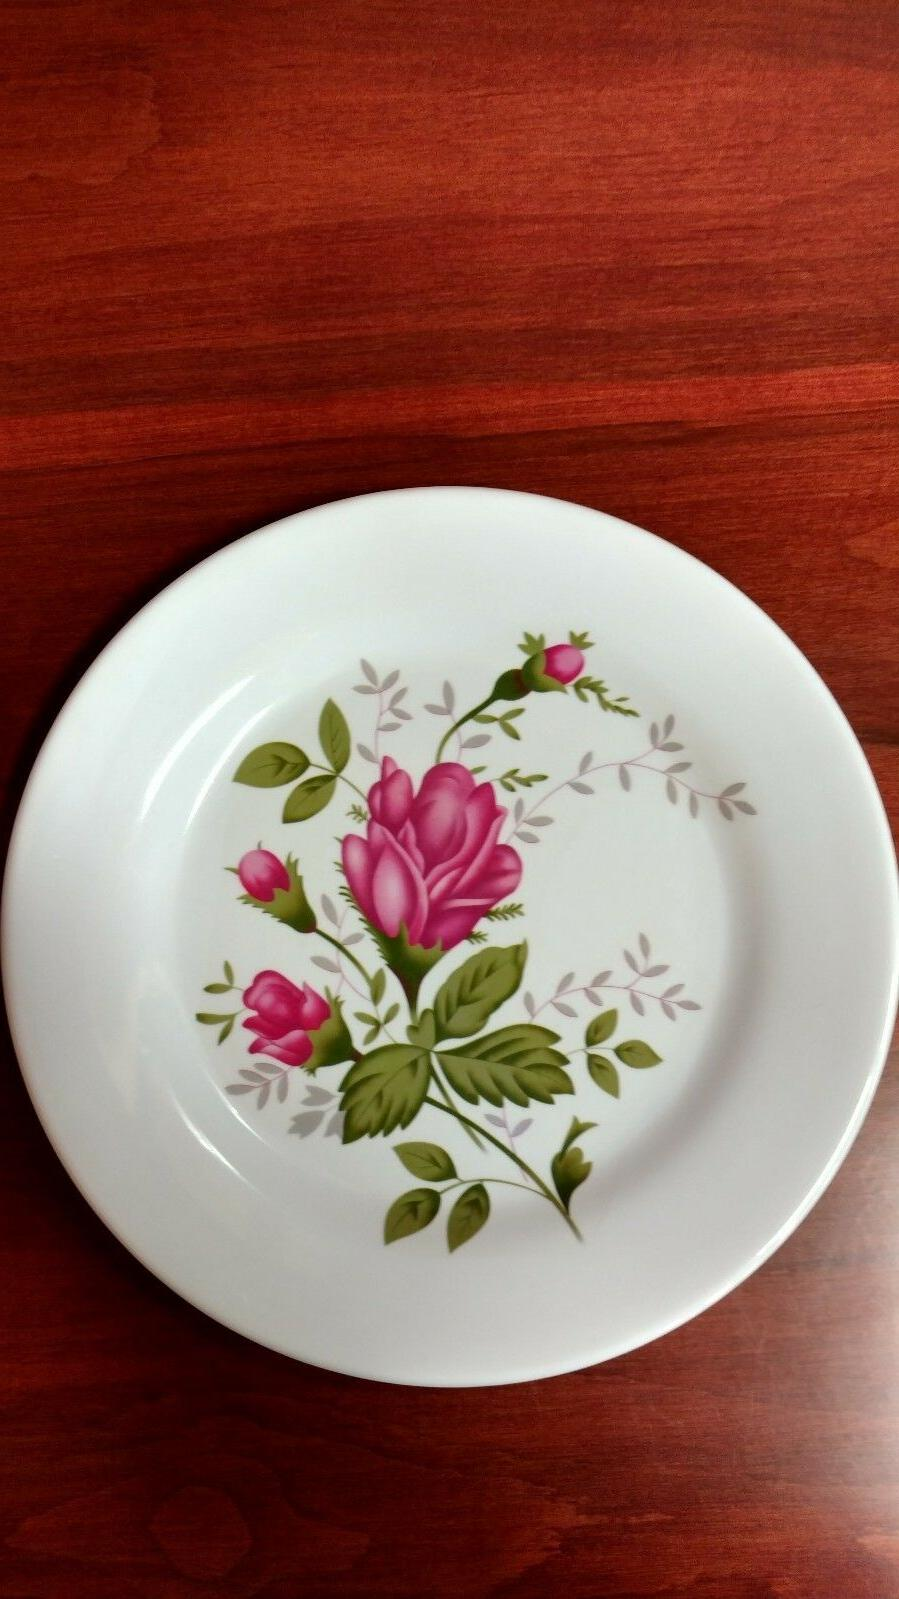 brand new melamine dinner plates with rose